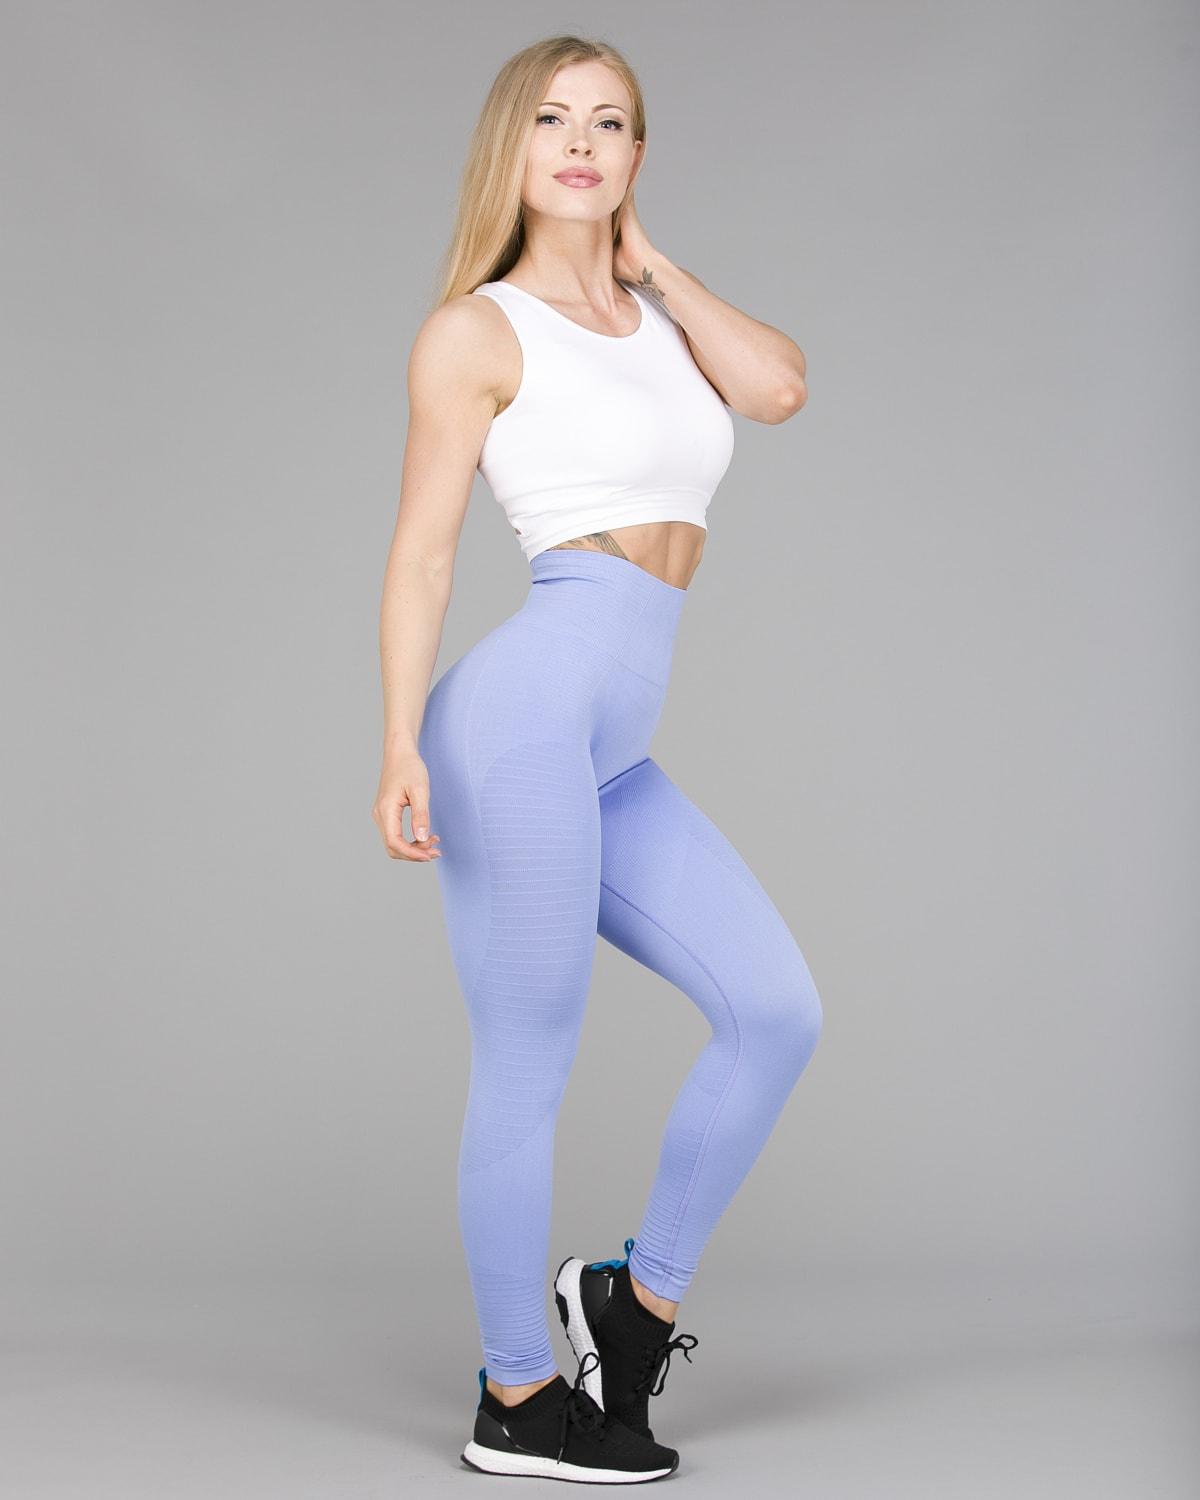 Jerf Gela 2.0 Tights Blue Pastel10